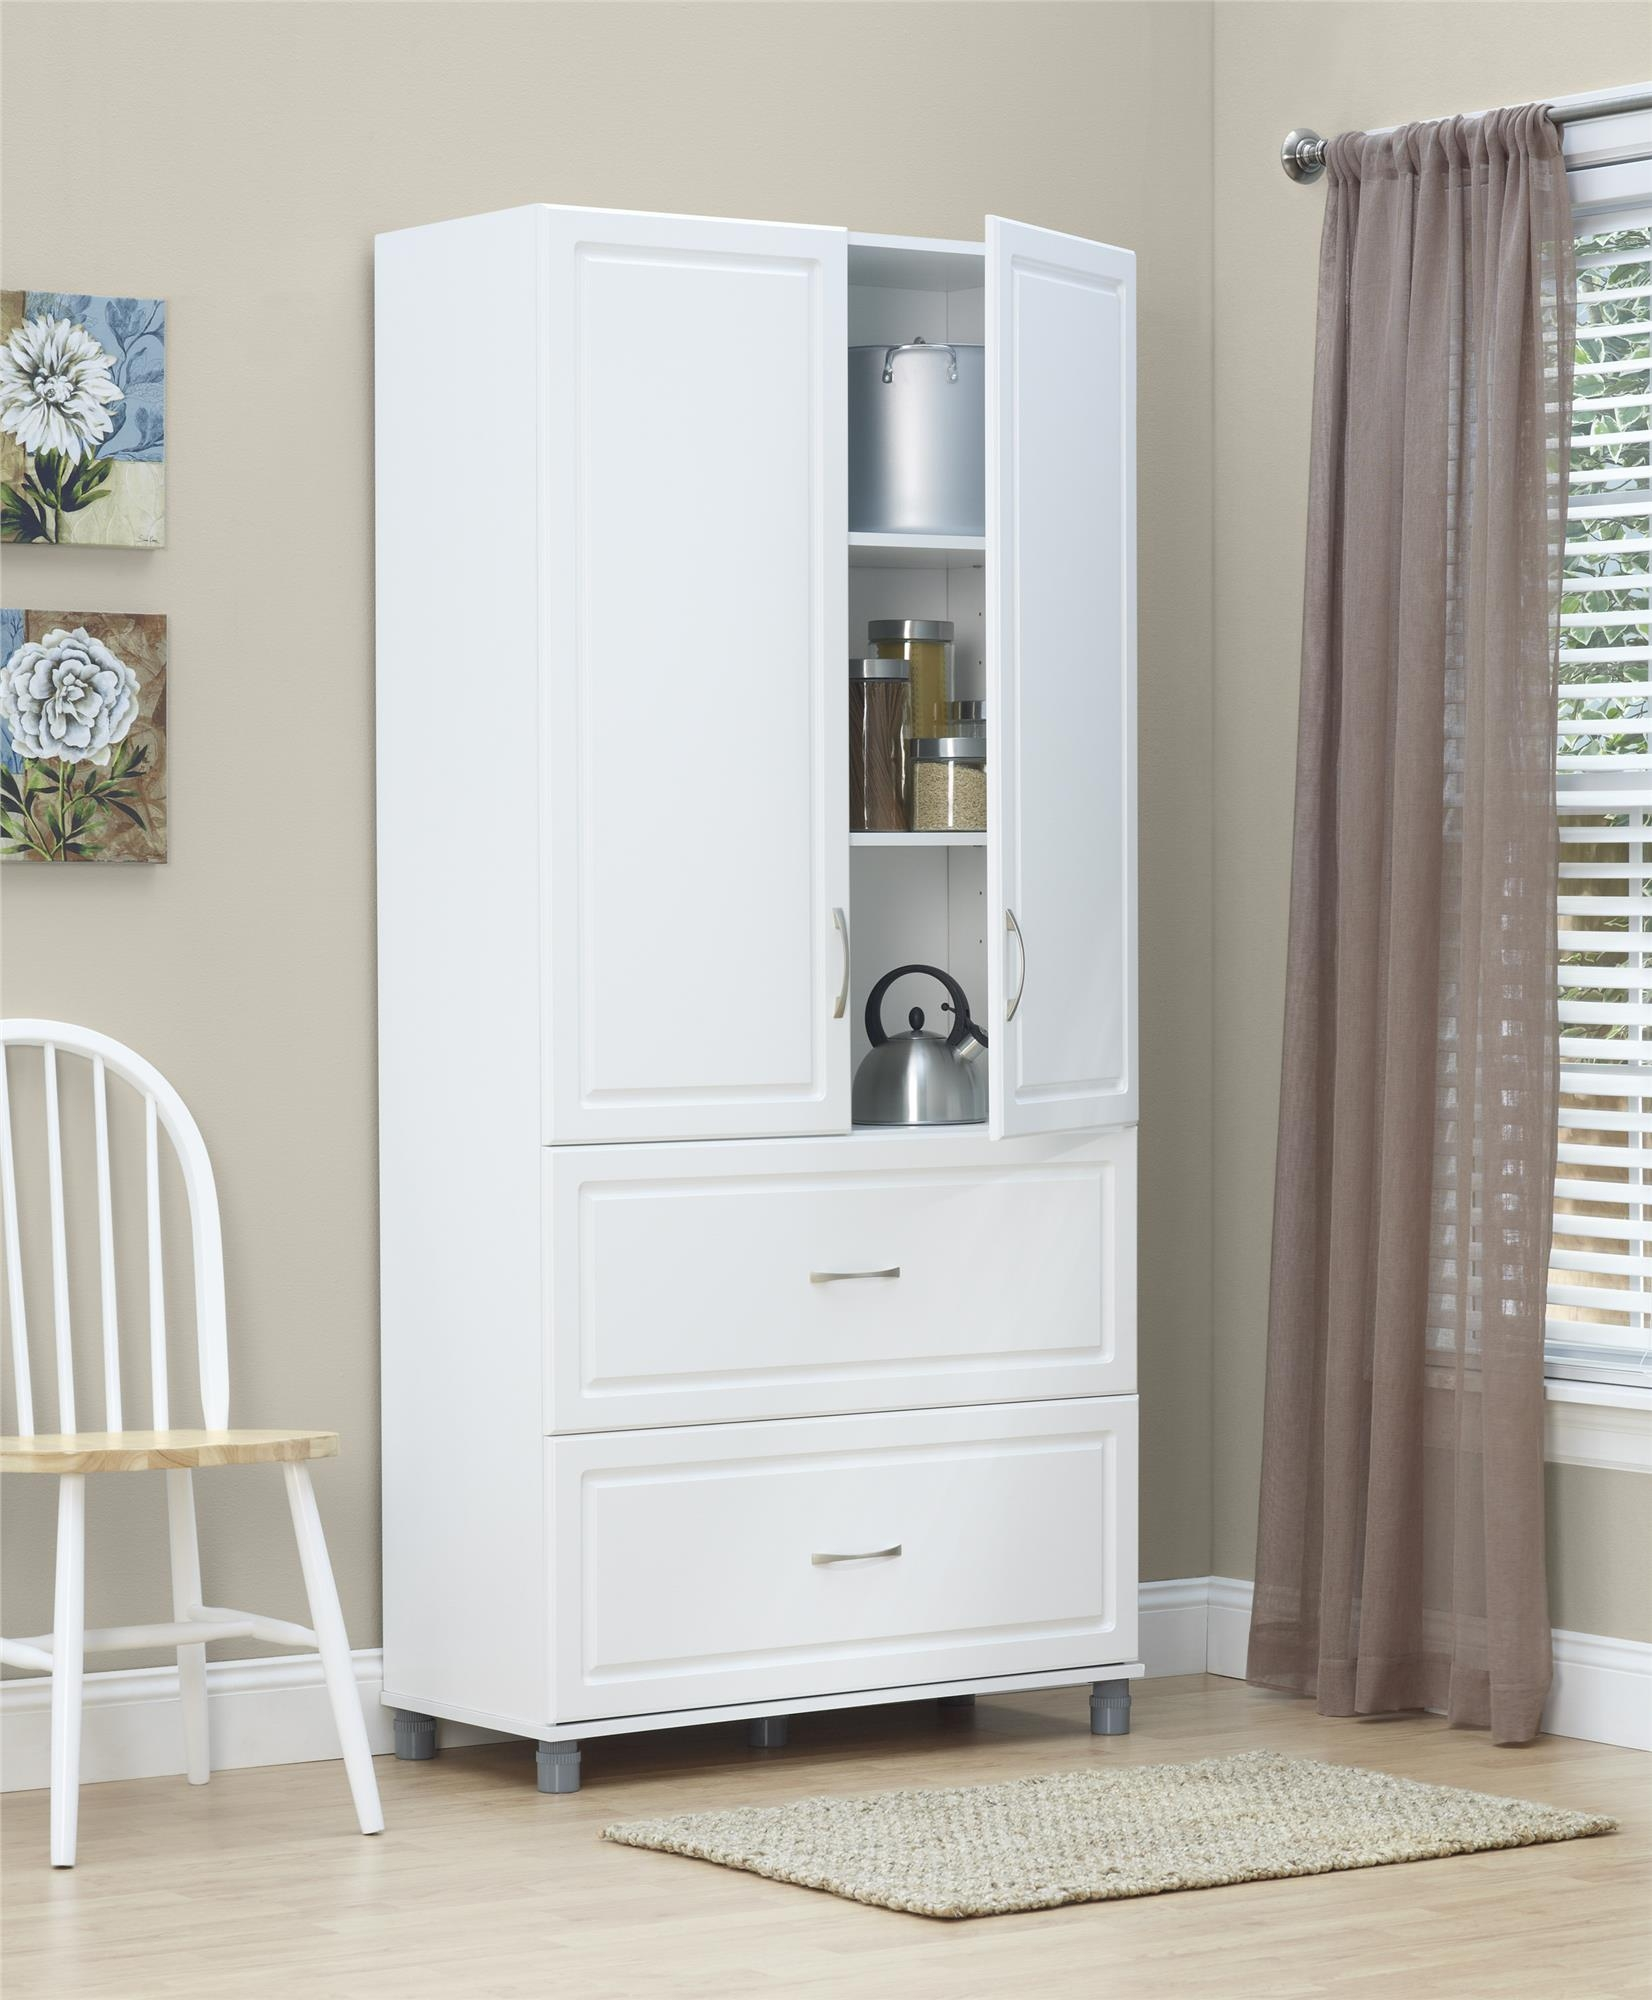 White Storage Cabinet With Doors And Drawers